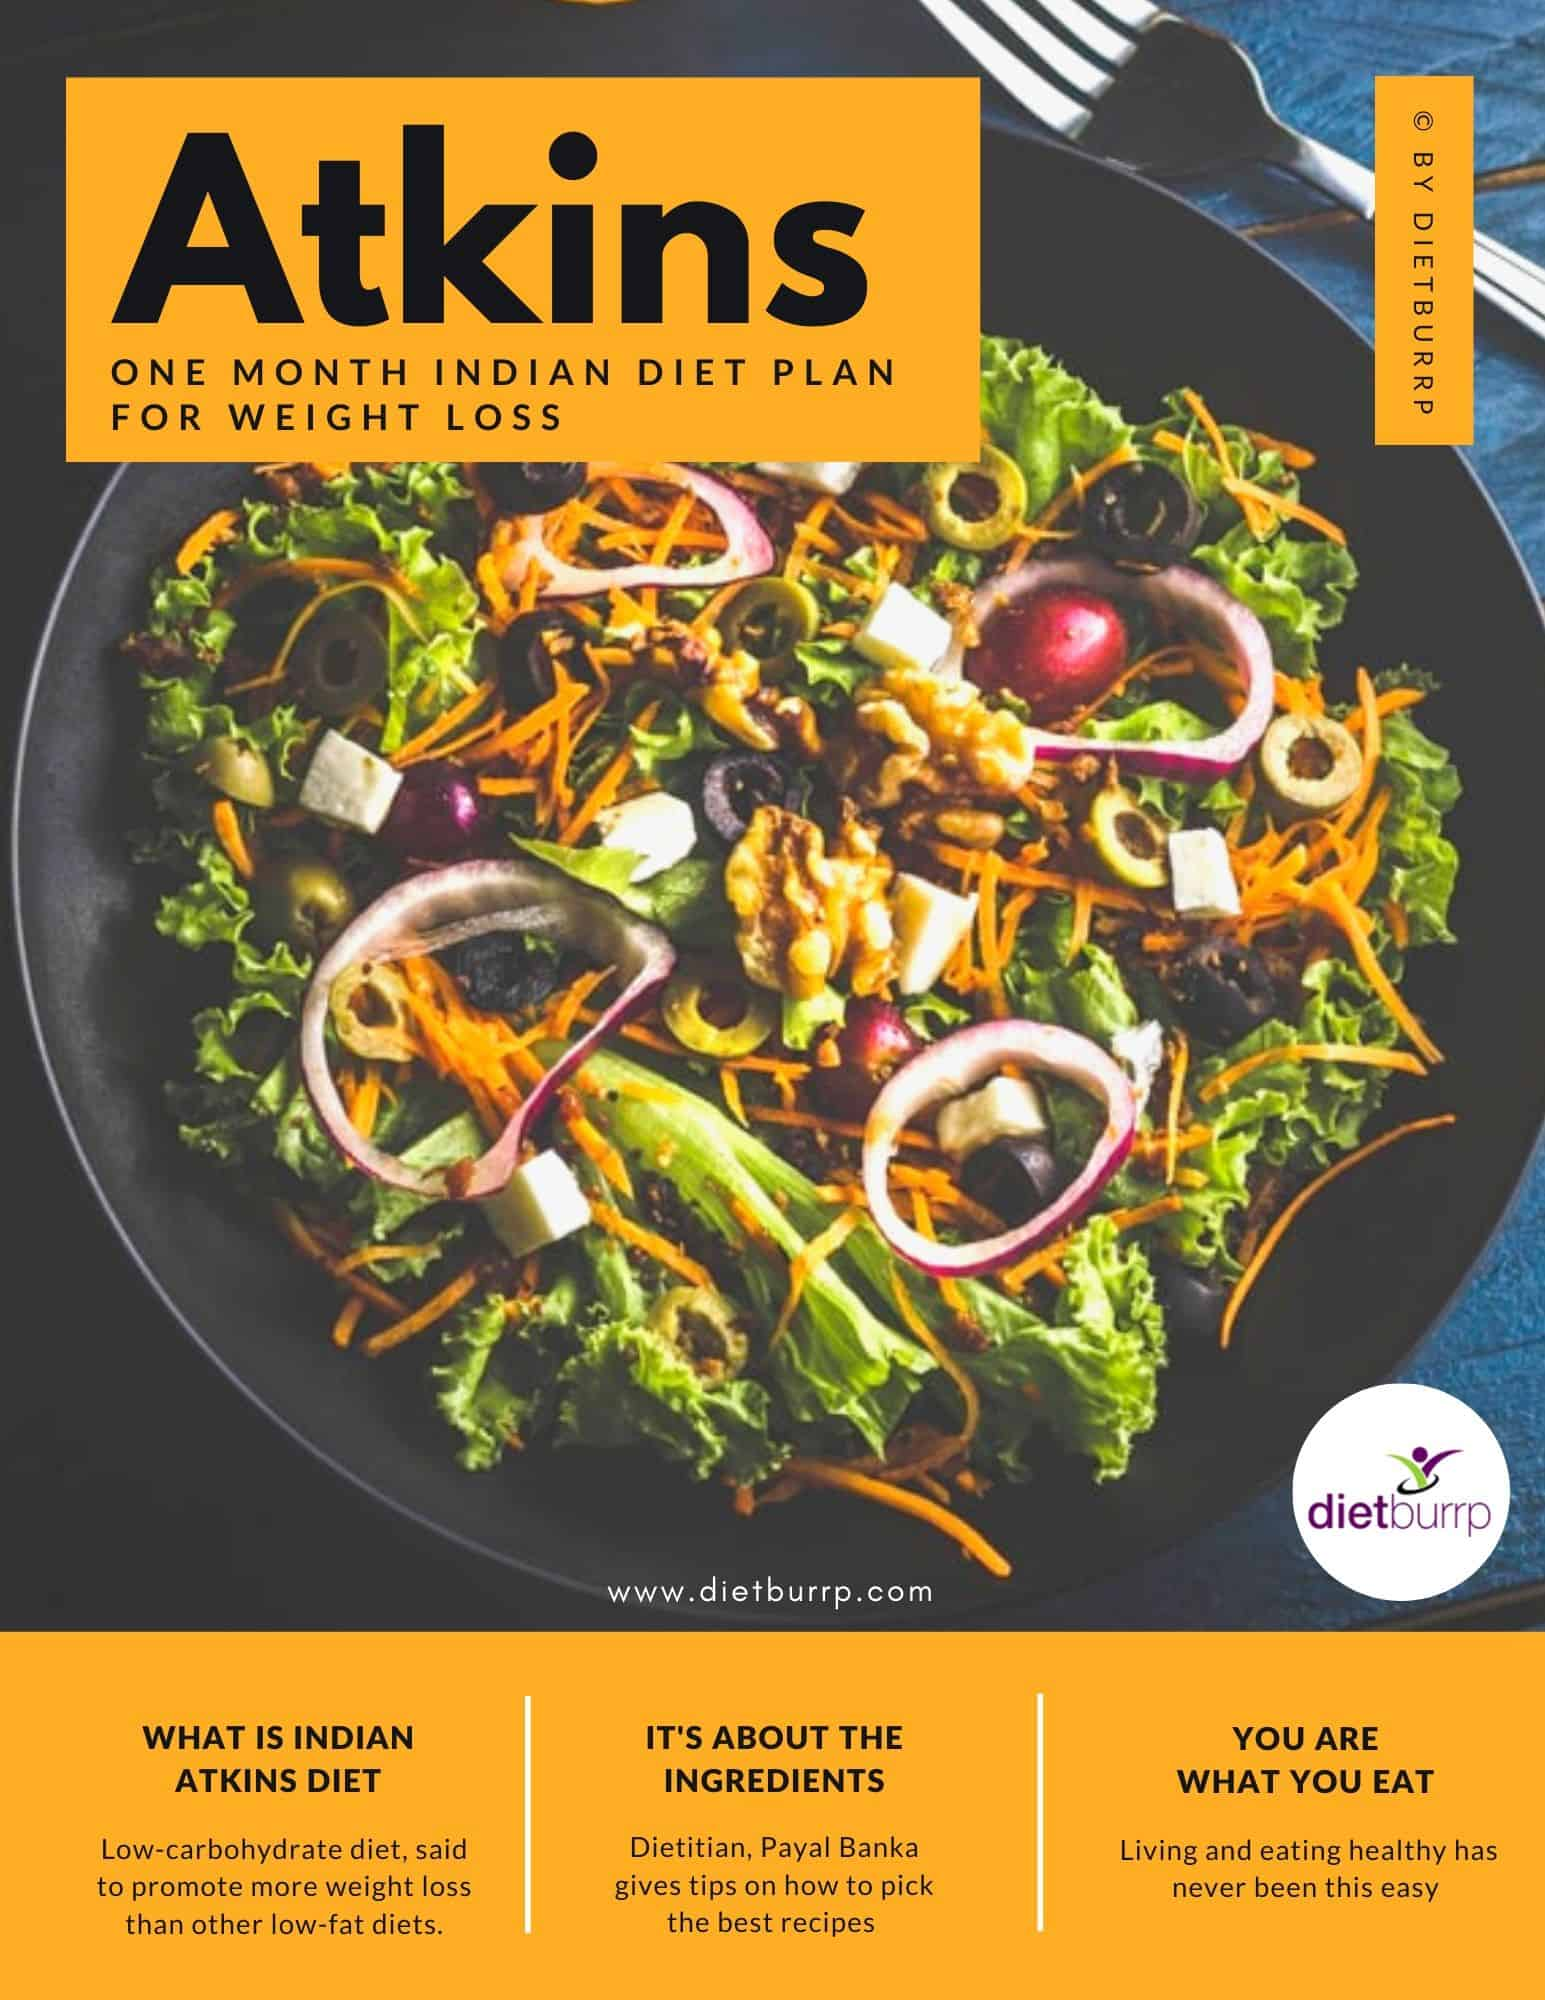 Atkins Diet Plan